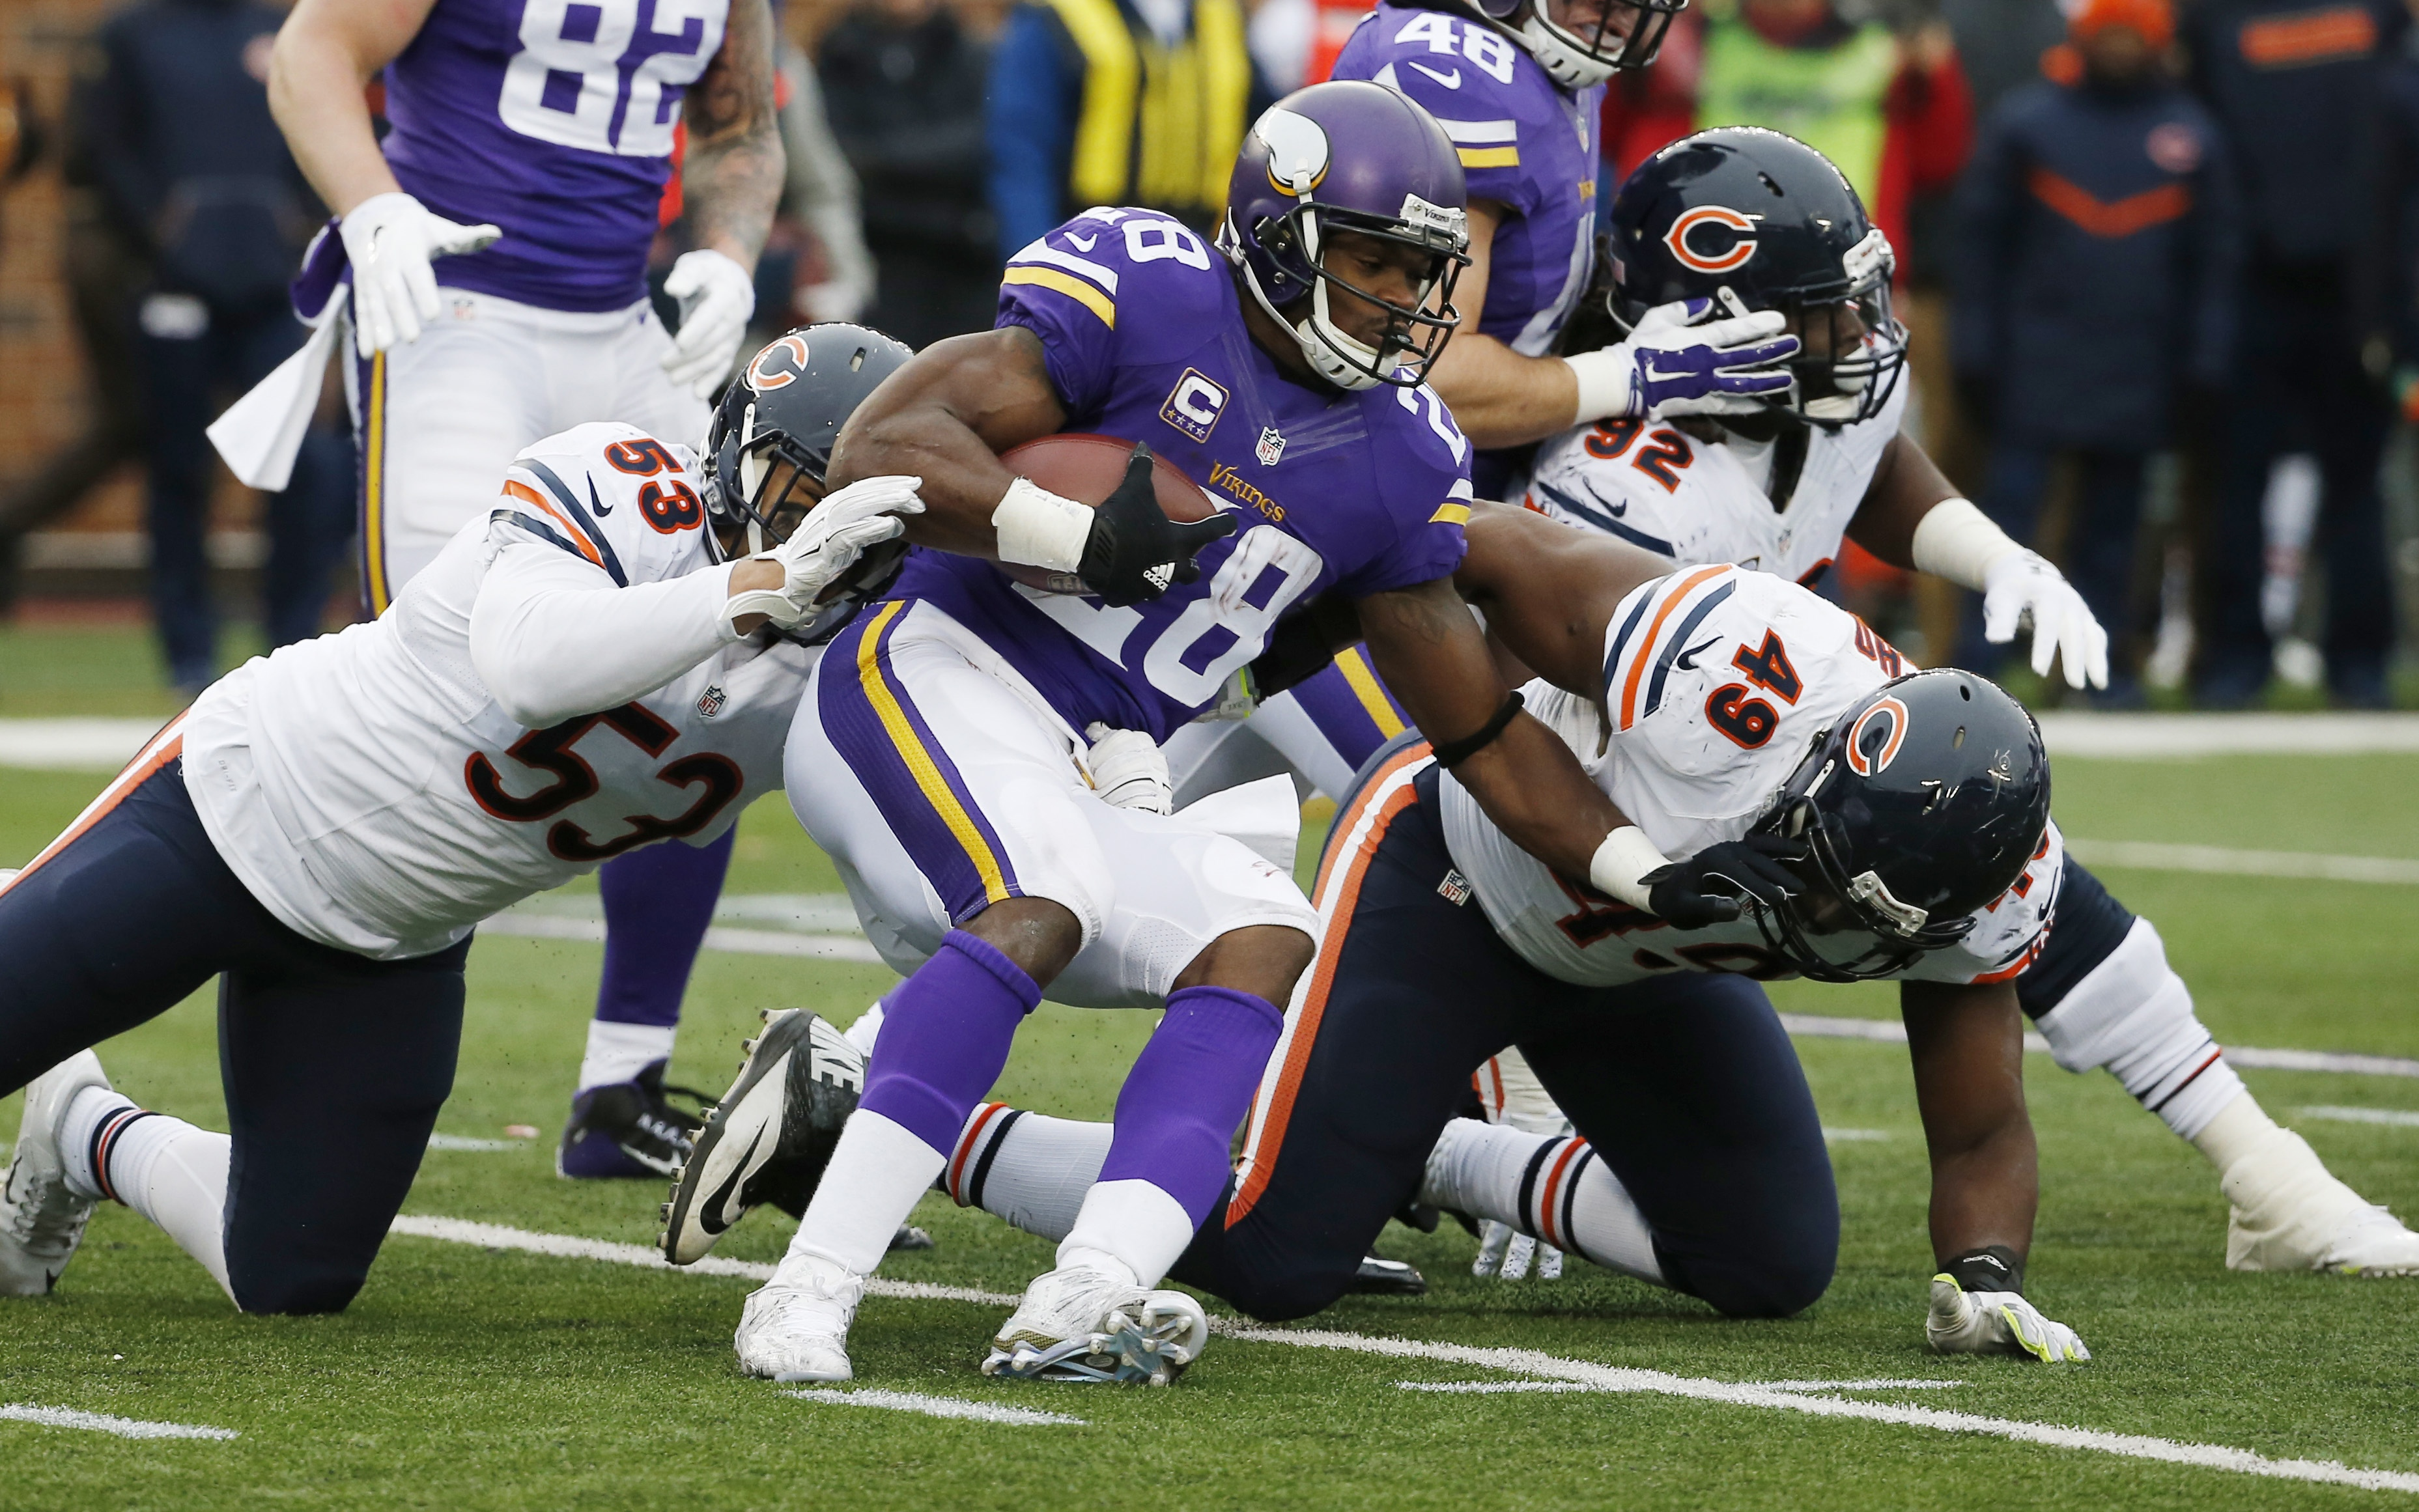 Minnesota Vikings running back Adrian Peterson (28) is stopped by Chicago Bears linebacker John Timu (53) and outside linebacker Sam Acho (49) during the second half of an NFL football game, Sunday, Dec. 20, 2015, in Minneapolis. (AP Photo/Ann Heisenfelt)